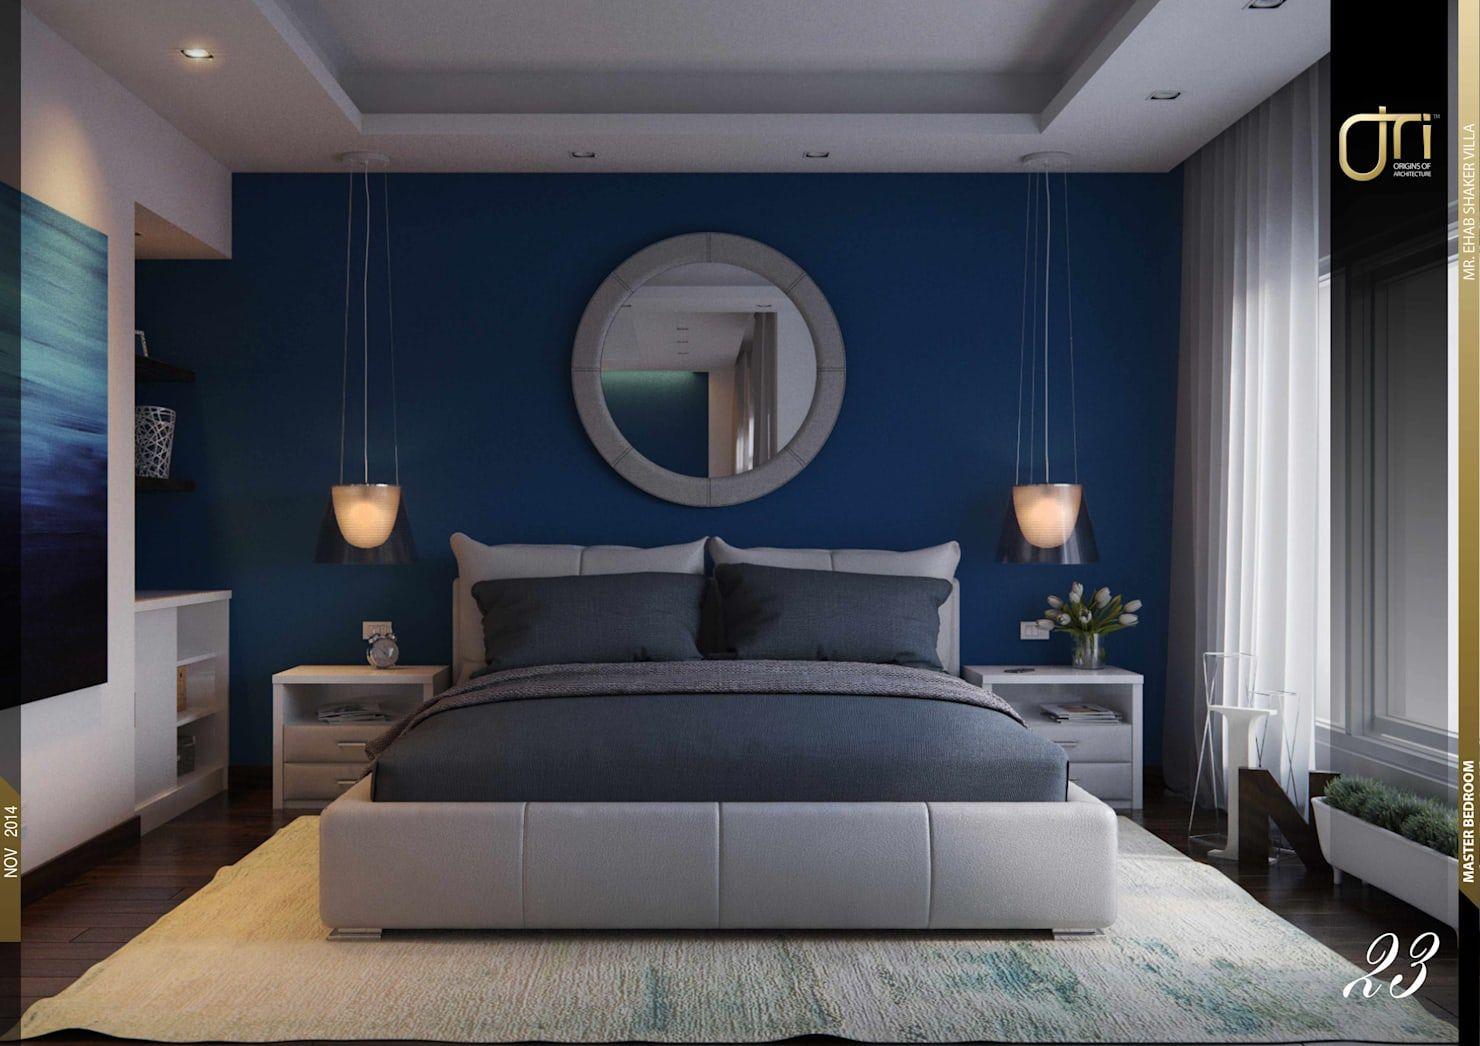 #badroom (With images) | Home decor bedroom, Bedroom decor ...